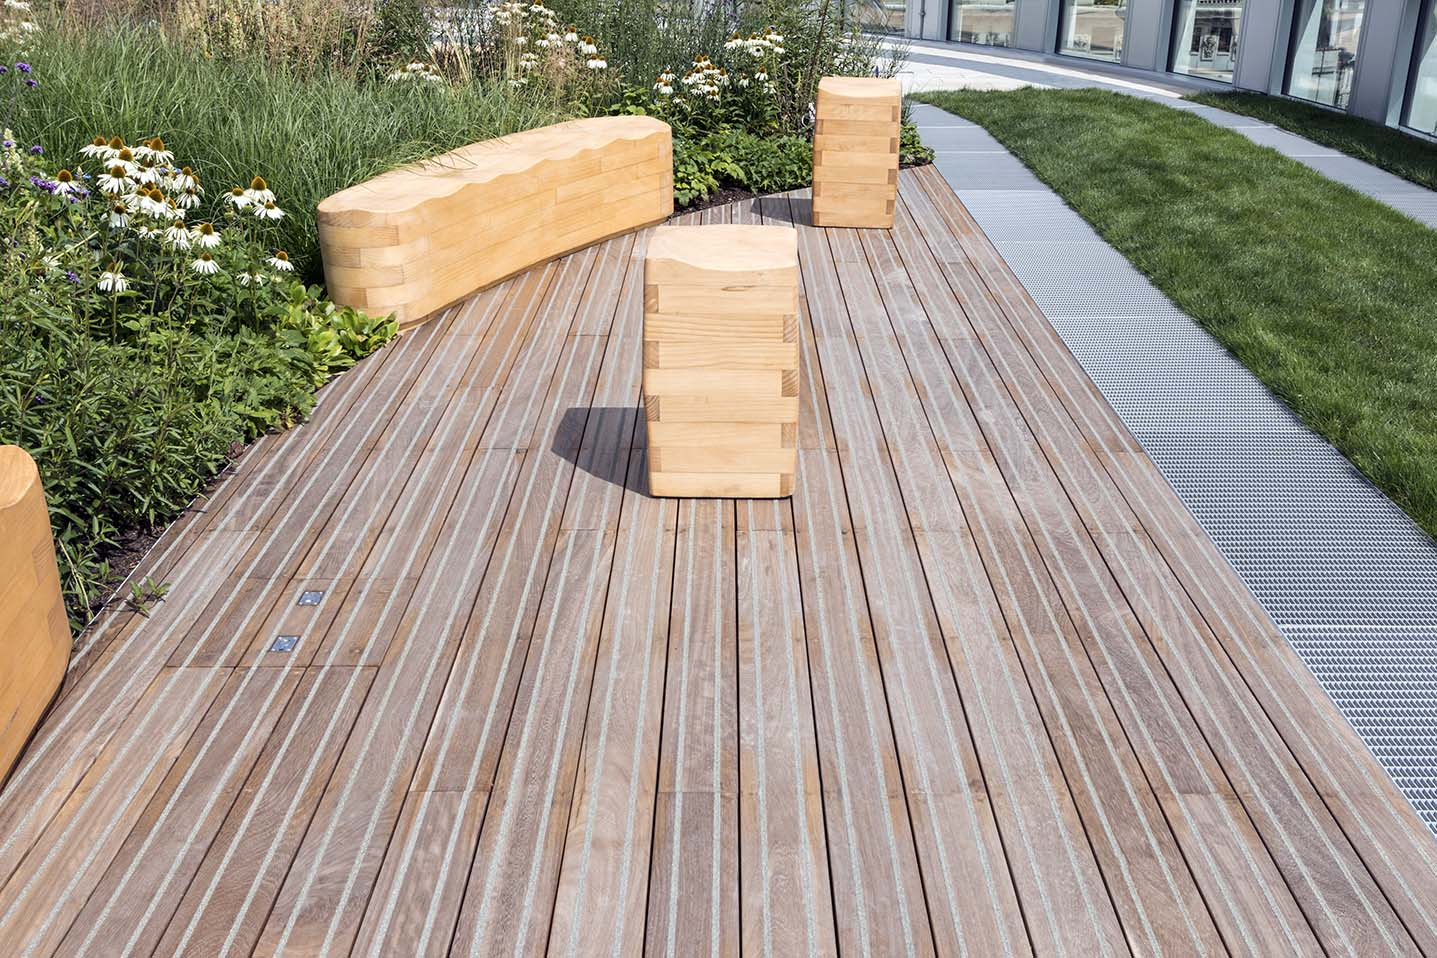 Pedestal system supports timber decking at stunning office space